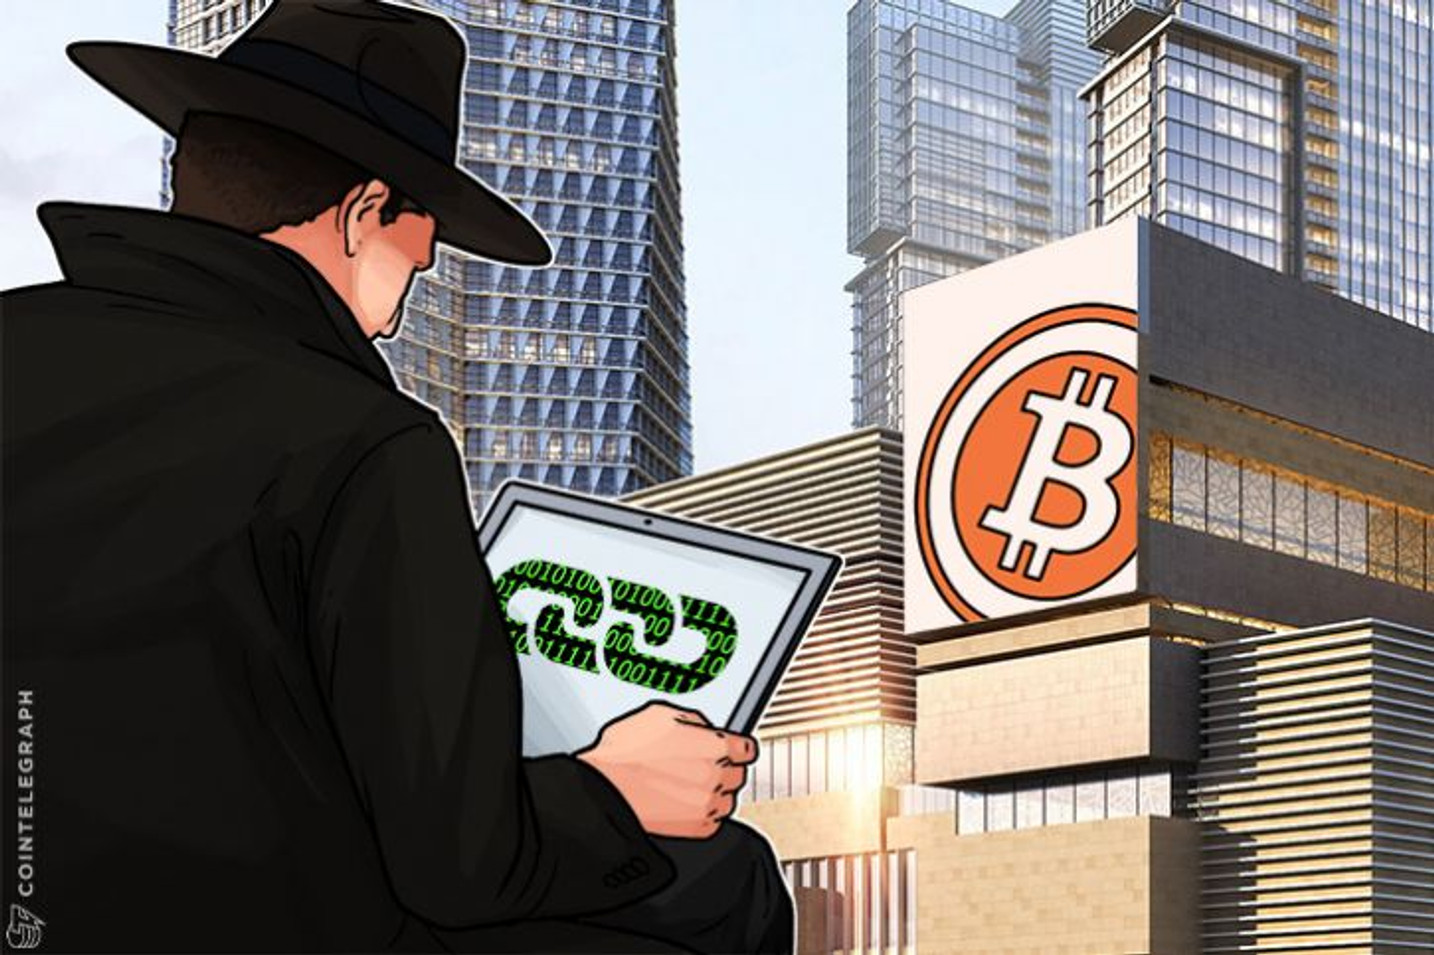 Bitcoin Drives Criminals Away, 'More Legitimate' Than People Know: US Security